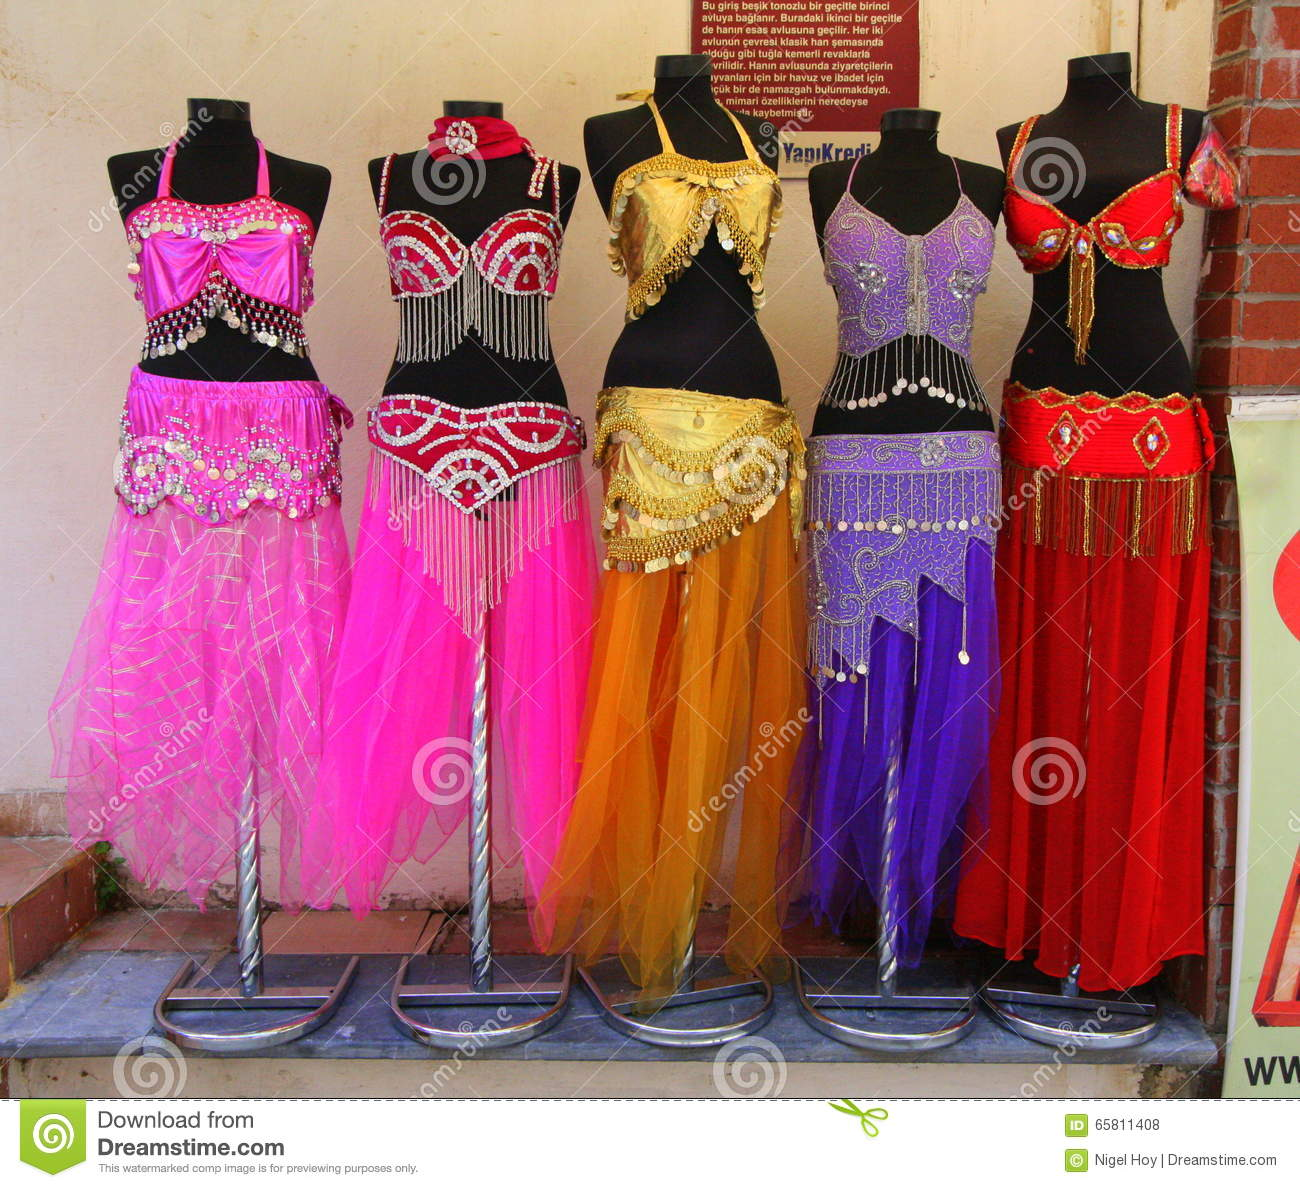 Belly Dancer Costumes On Stands Editorial Stock Photo - Image of